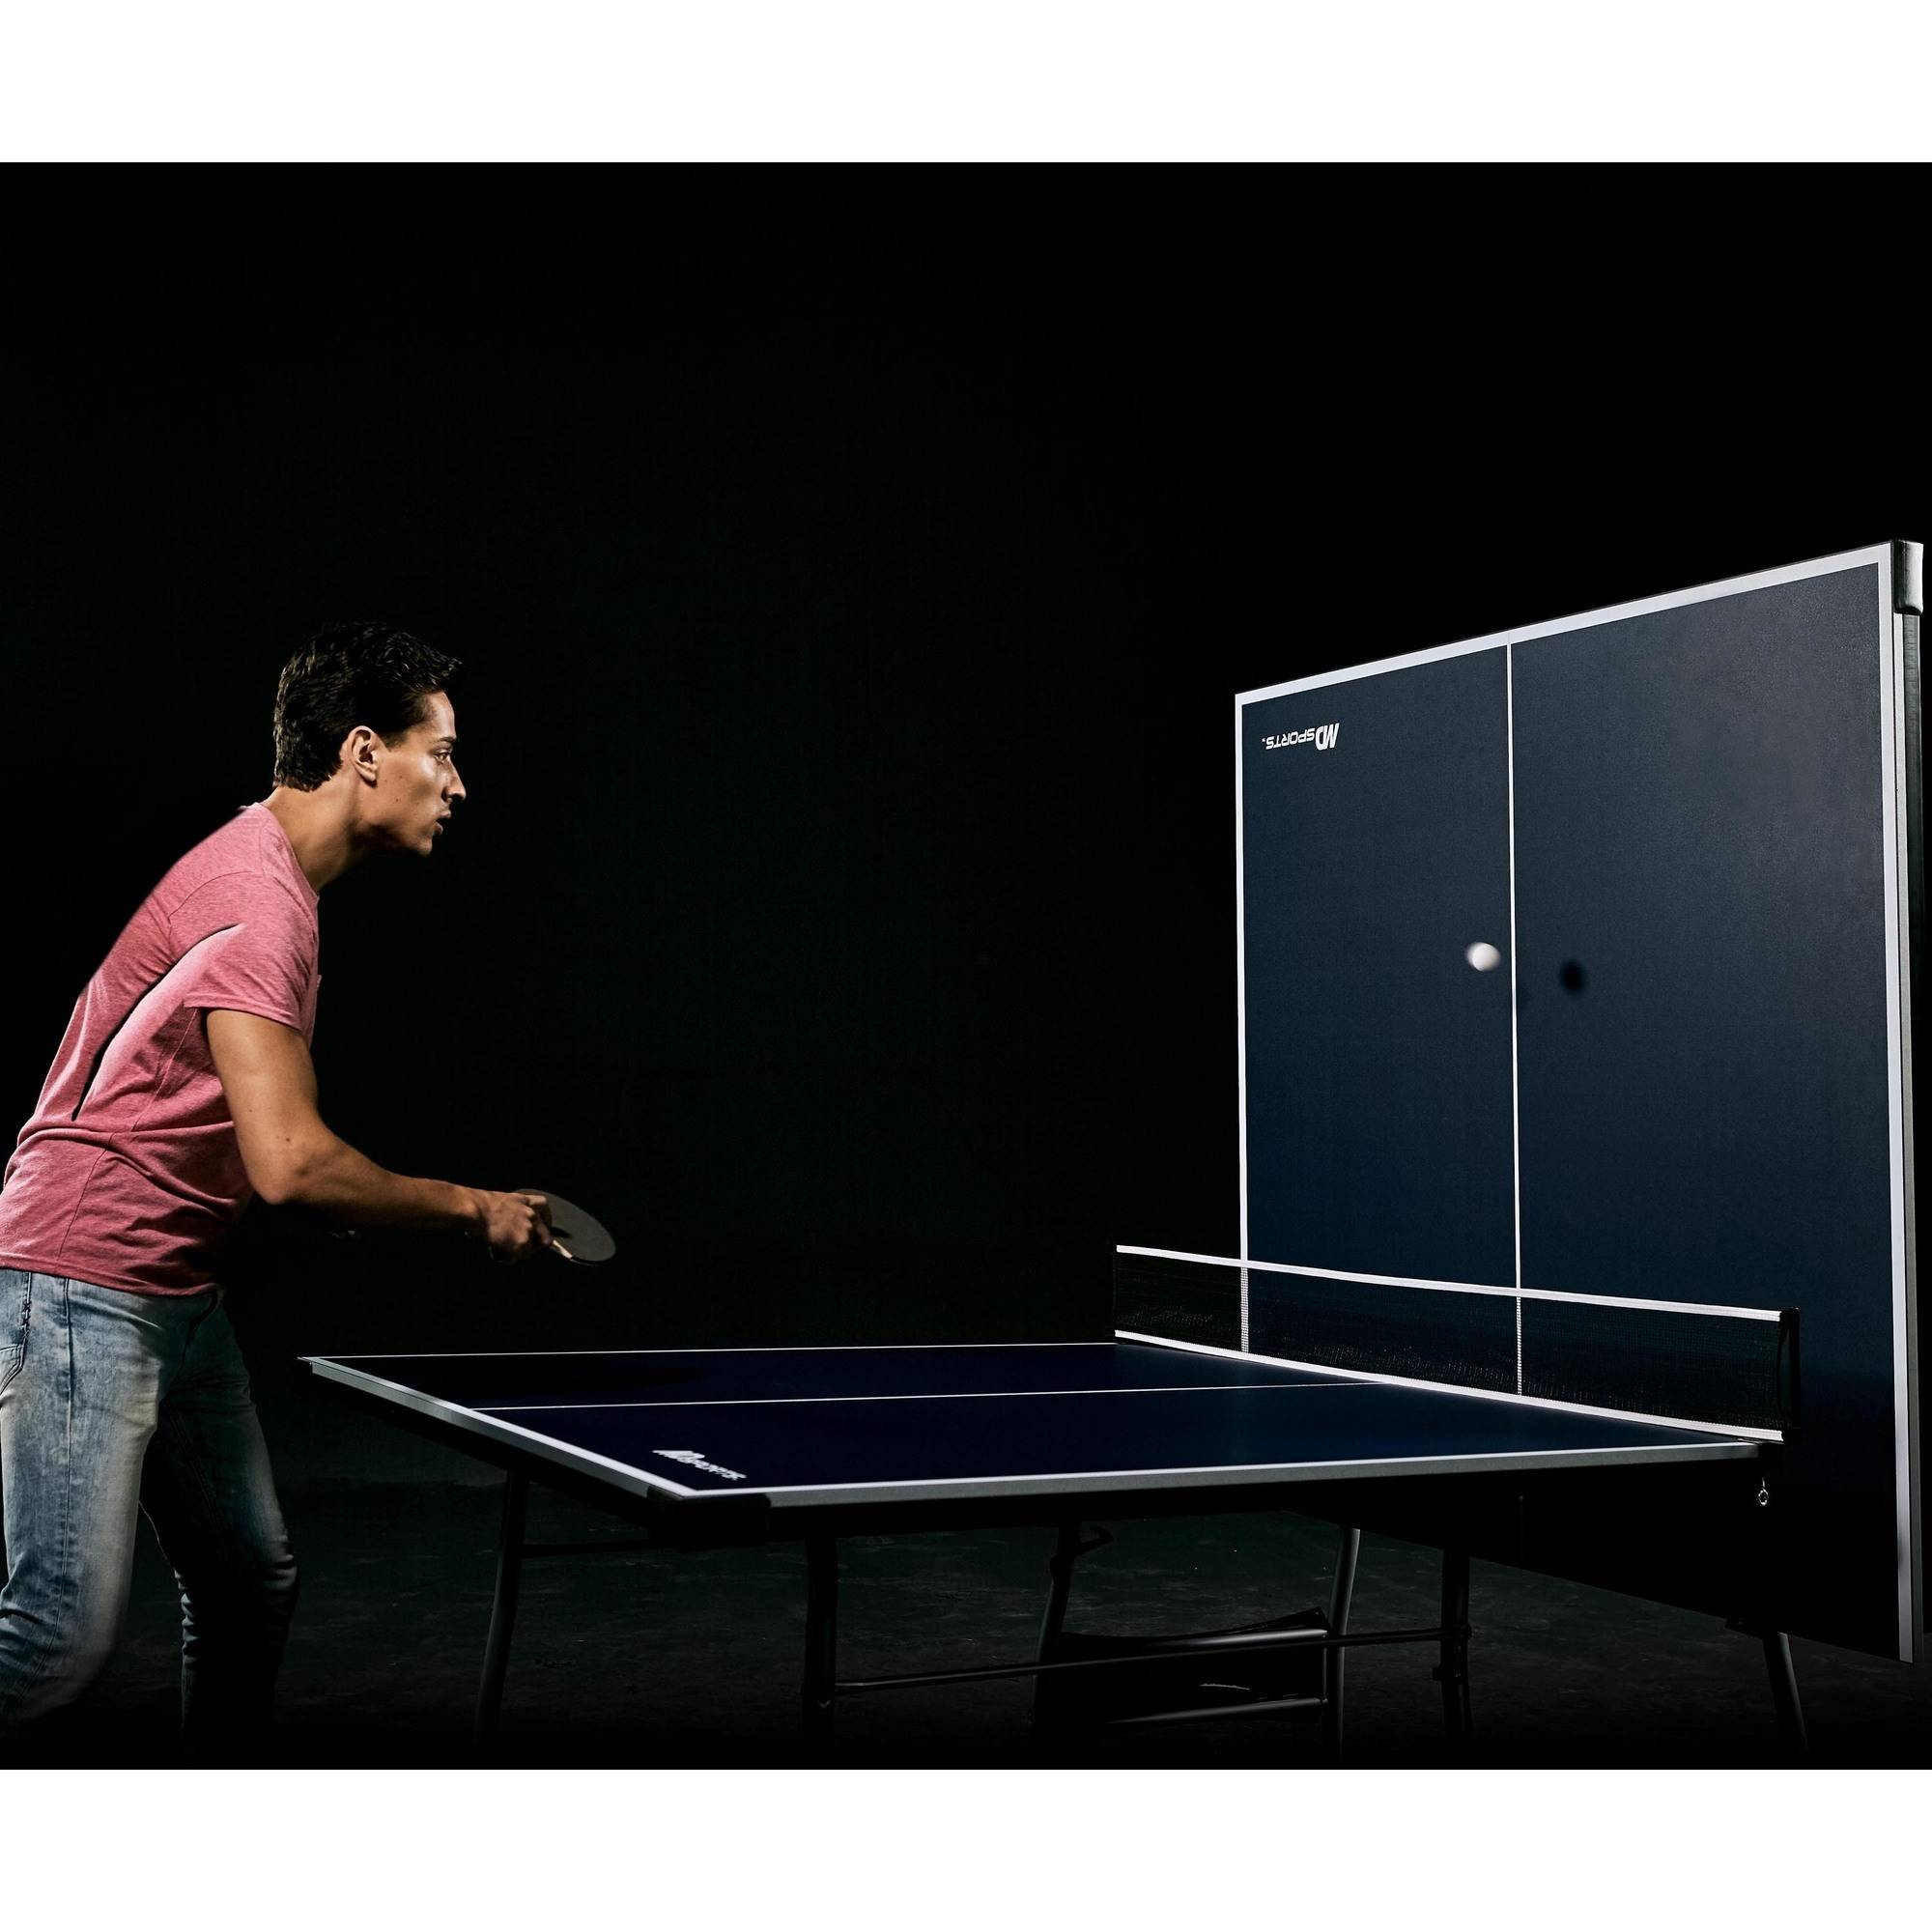 MD Sports Official Size Table Tennis Table   Walmart.com